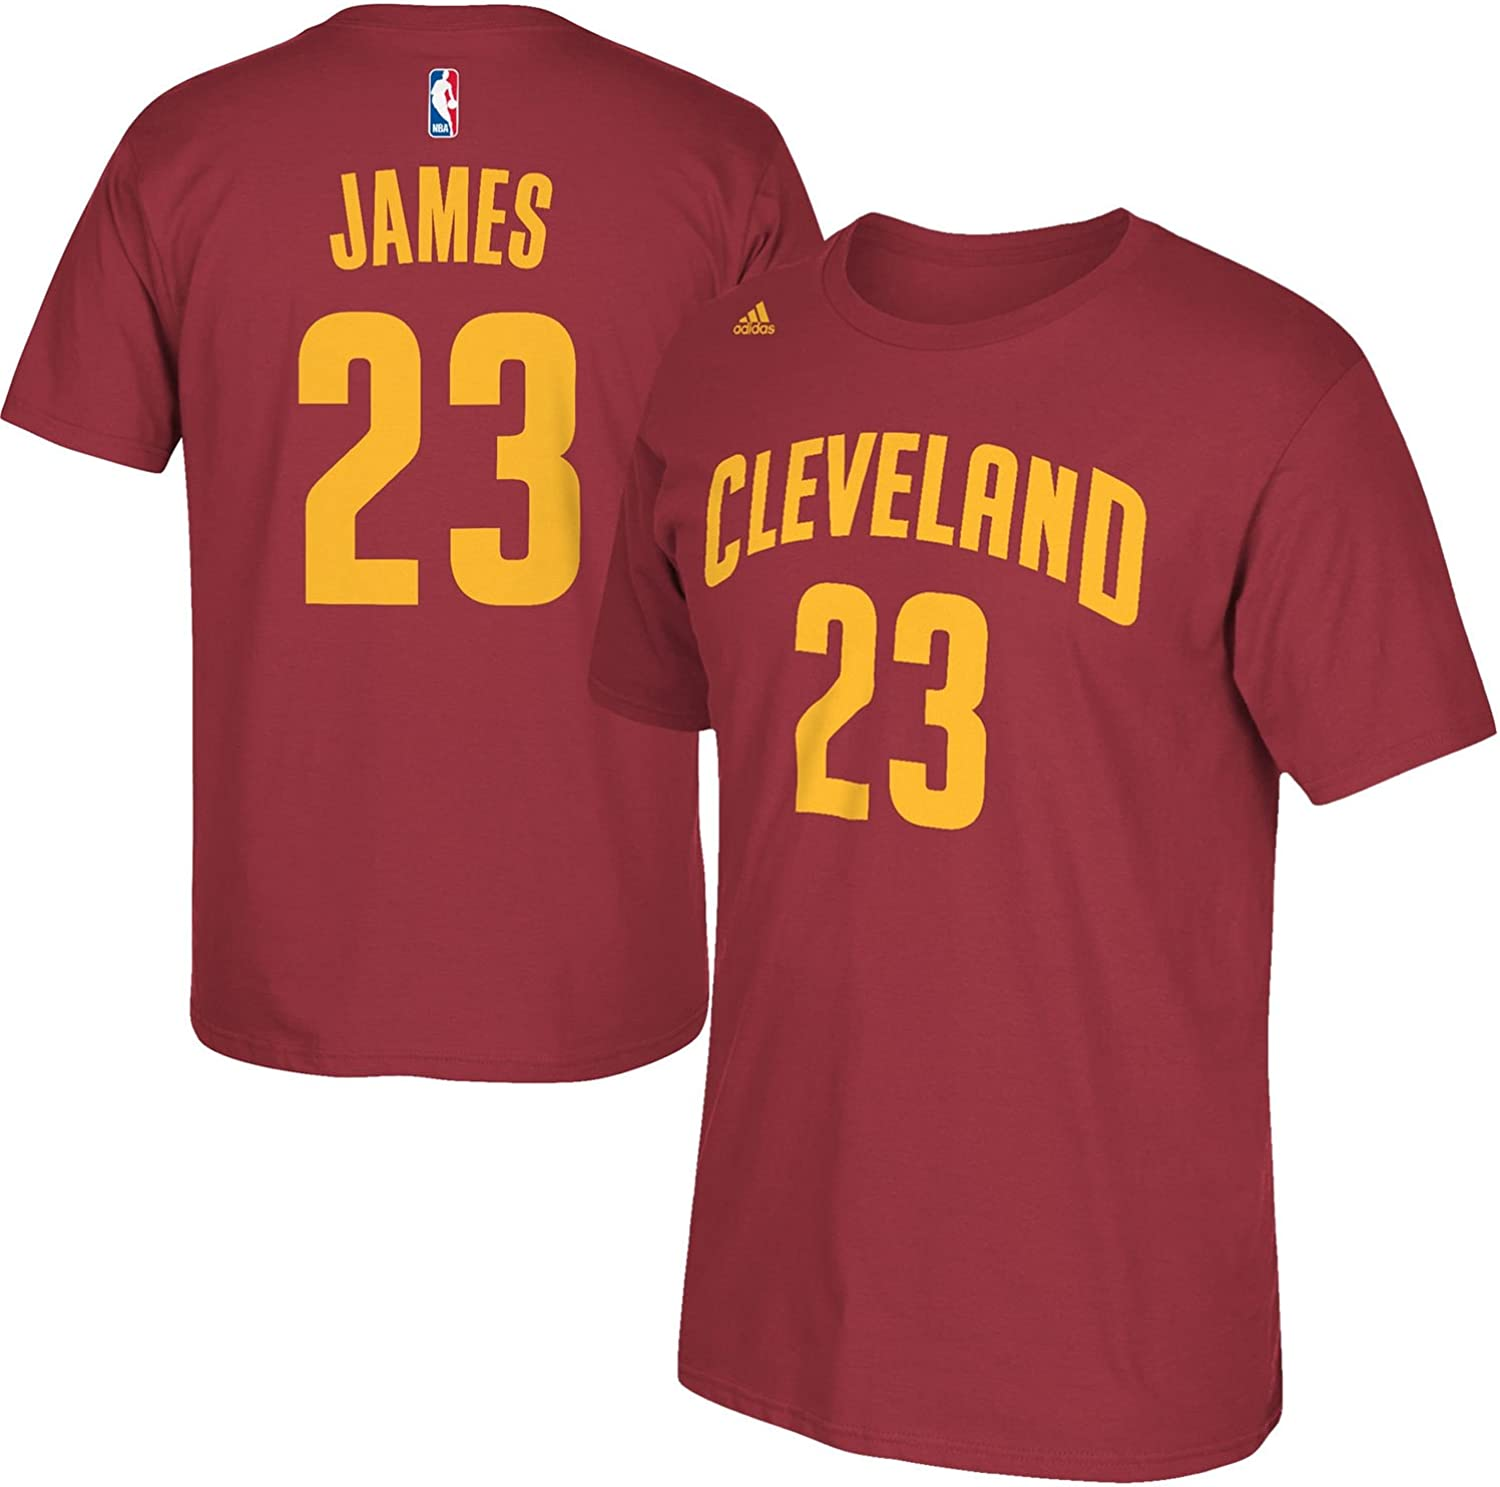 Medium 10//12, LeBron James Outerstuff NBA Youth 8-20 Performance Game Time Team Color Player Name and Number Jersey T-Shirt